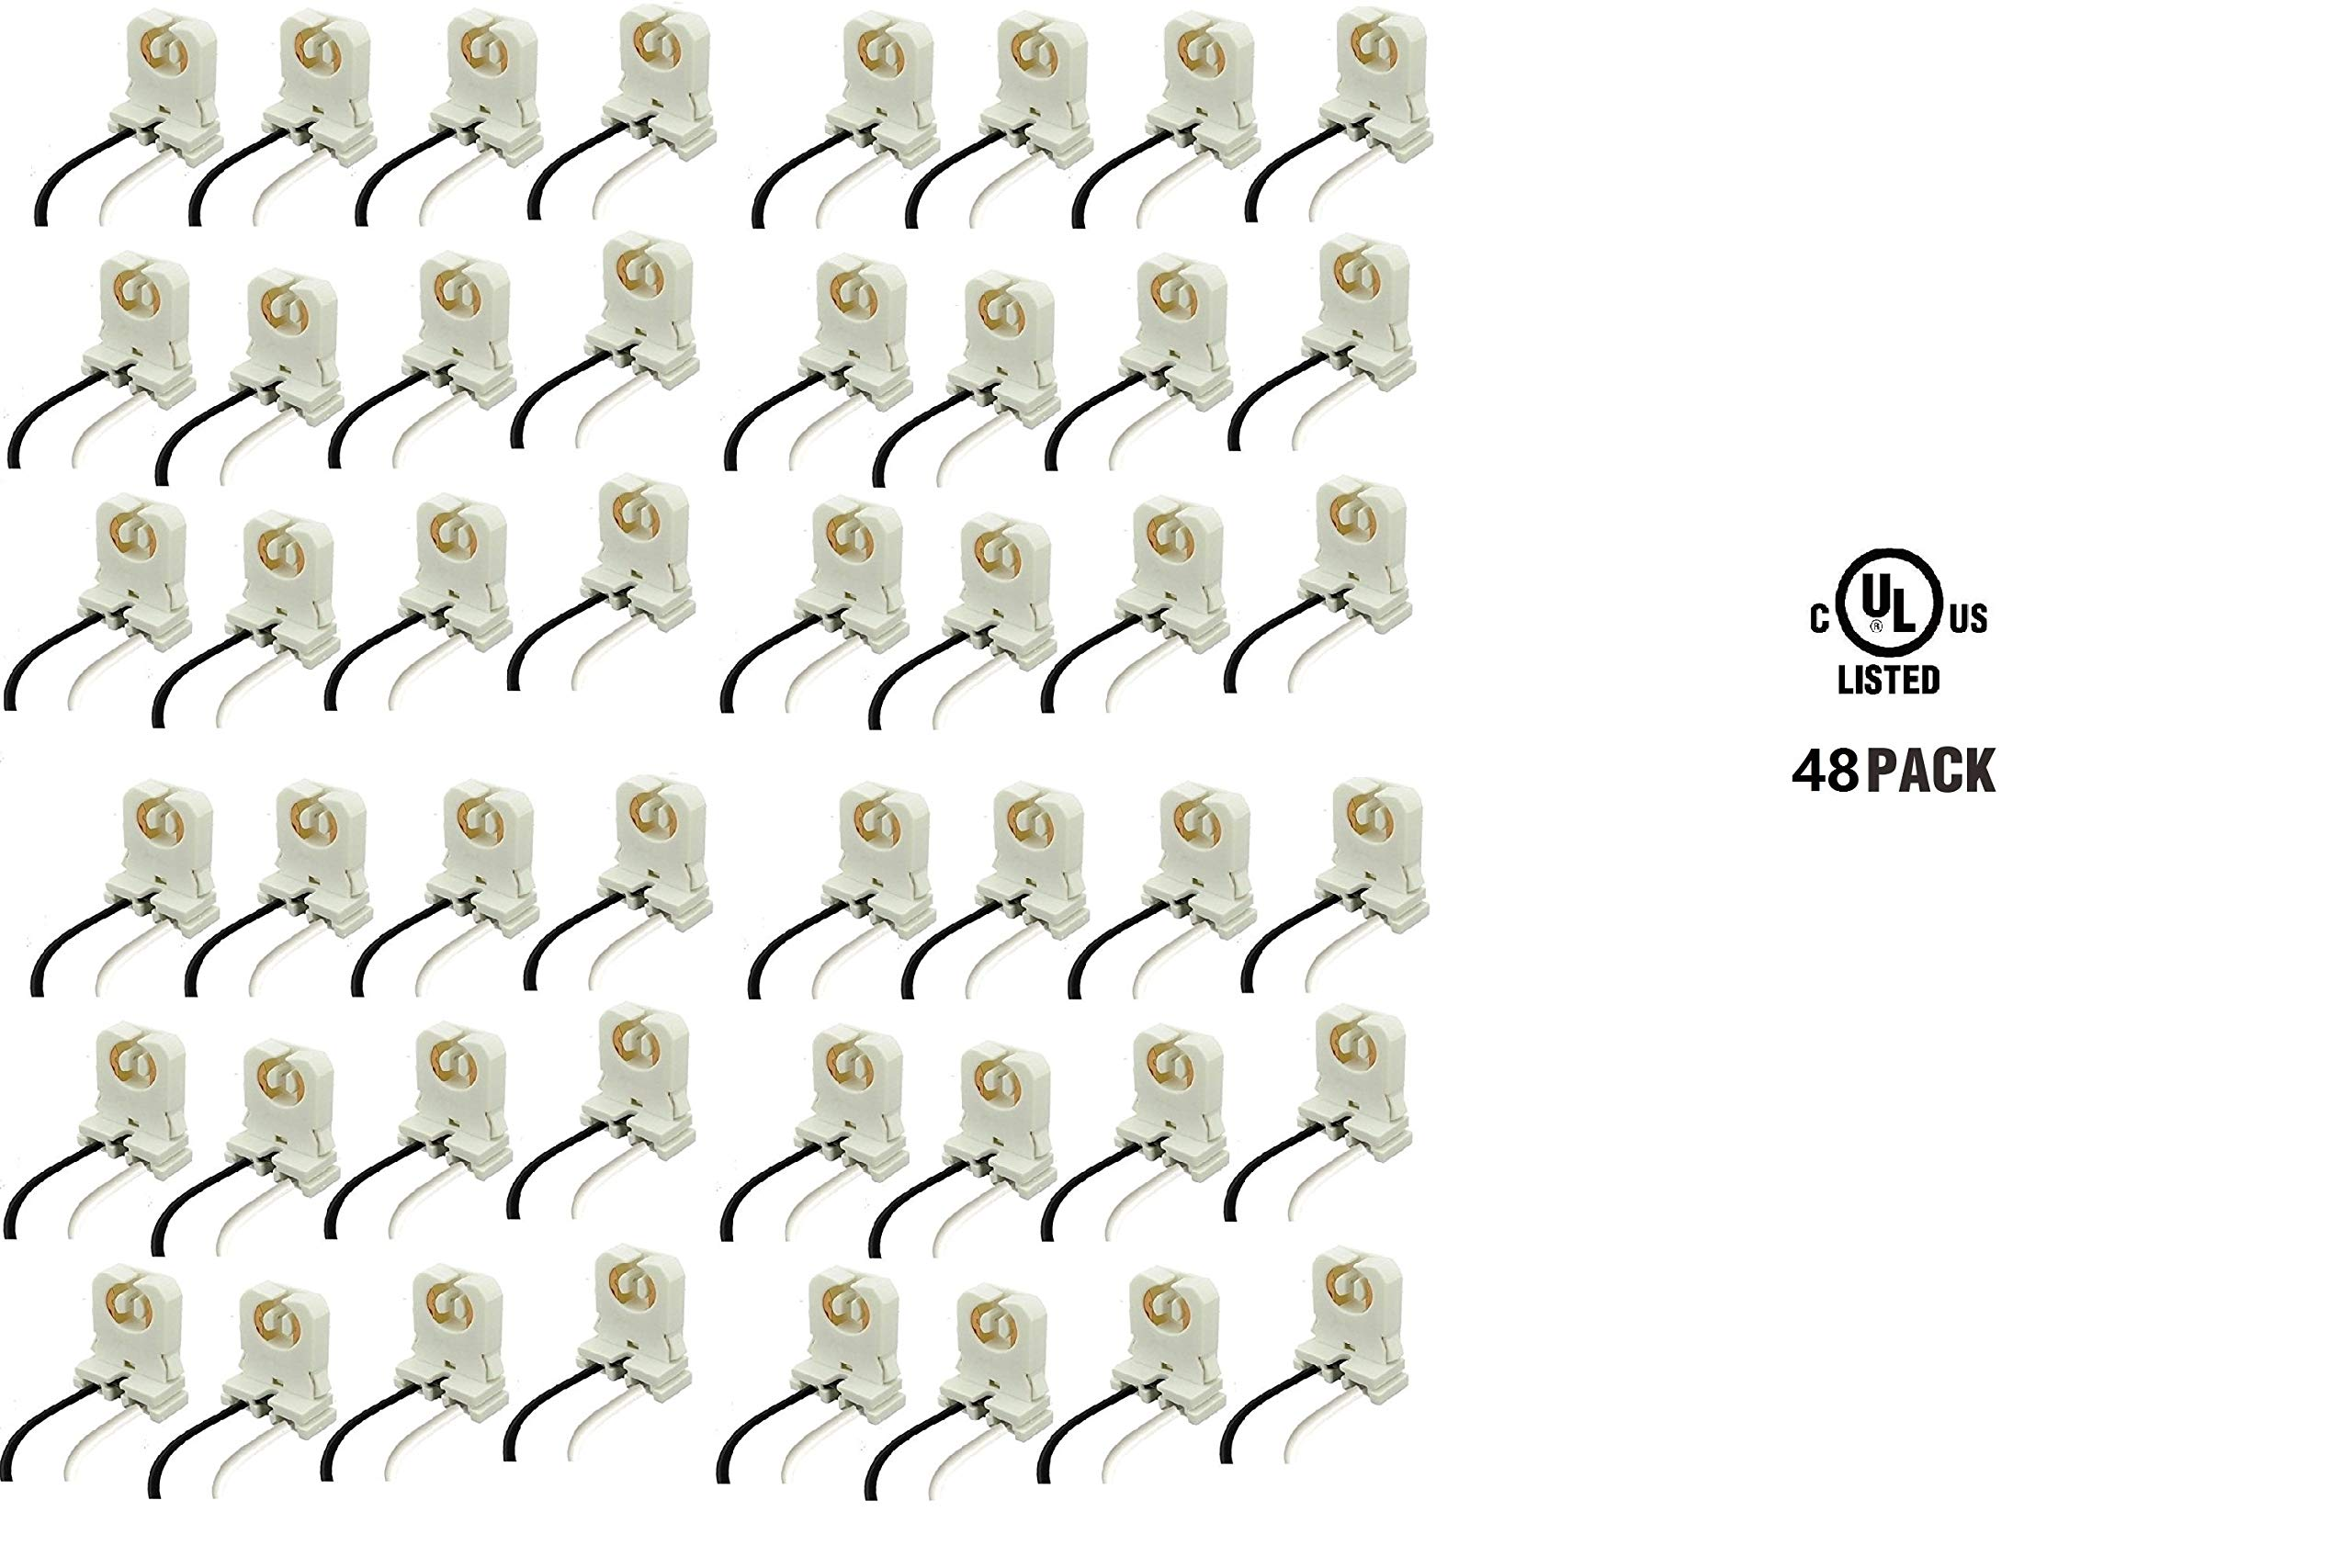 UL Listed Non-shunted T8 Lamp Holder, Lights Talk Socket Tombstone for LED Fluorescent Tube Replacements Turn-type Lampholder, Medium Bi-pin Socket for Programmed Start Ballasts (48-Pack With Wire)